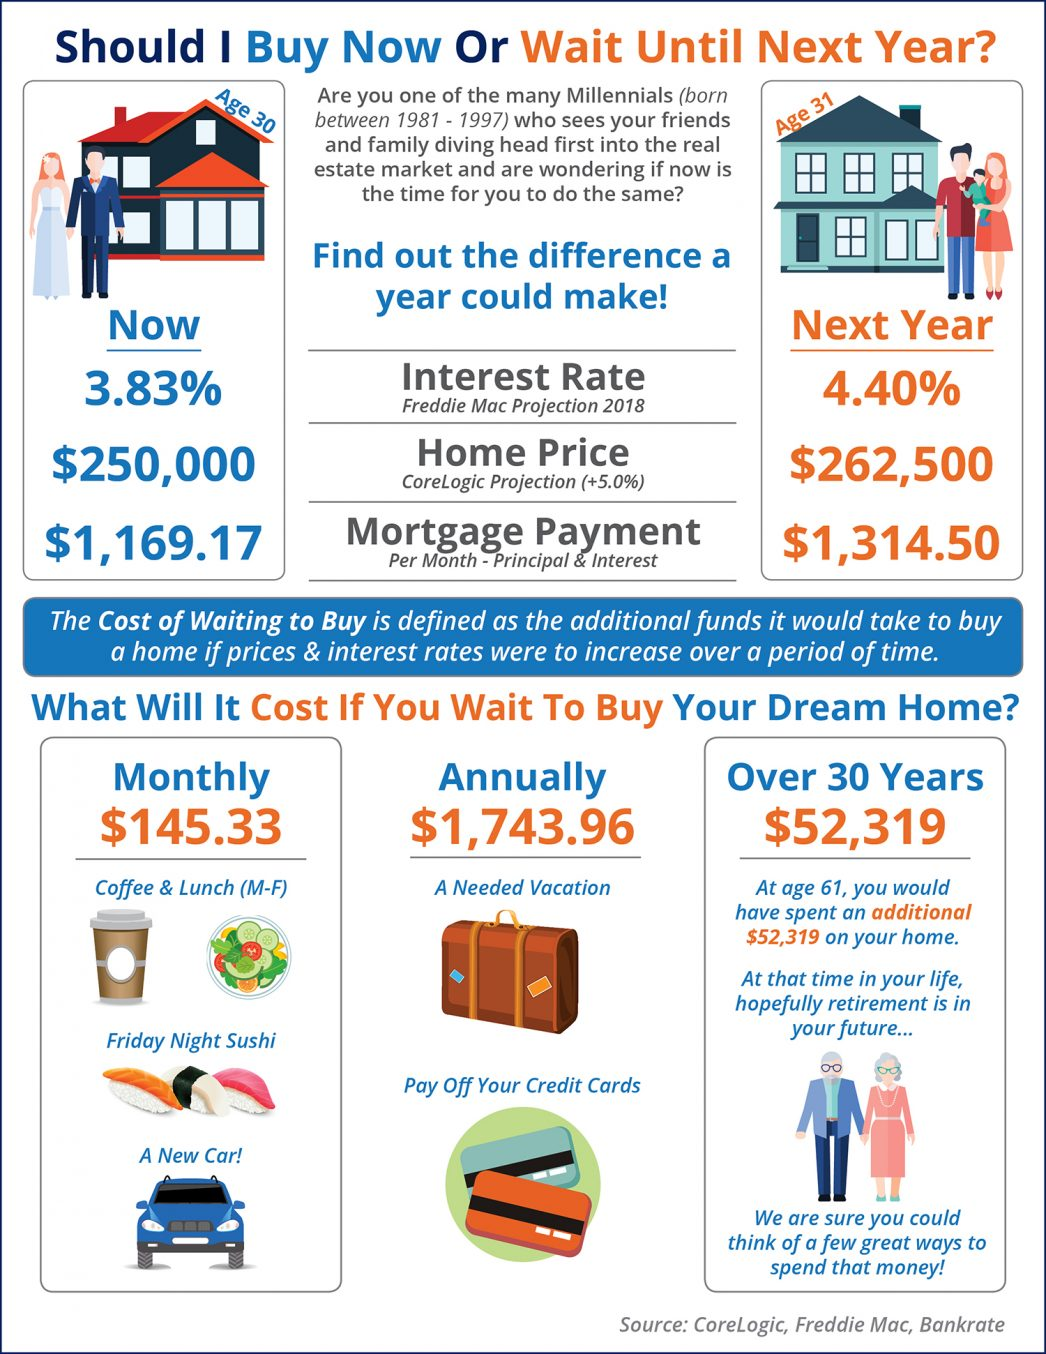 Should I Buy a Home Now? Or Wait Until Next Year? [INFOGRAPHIC]| MyKCM